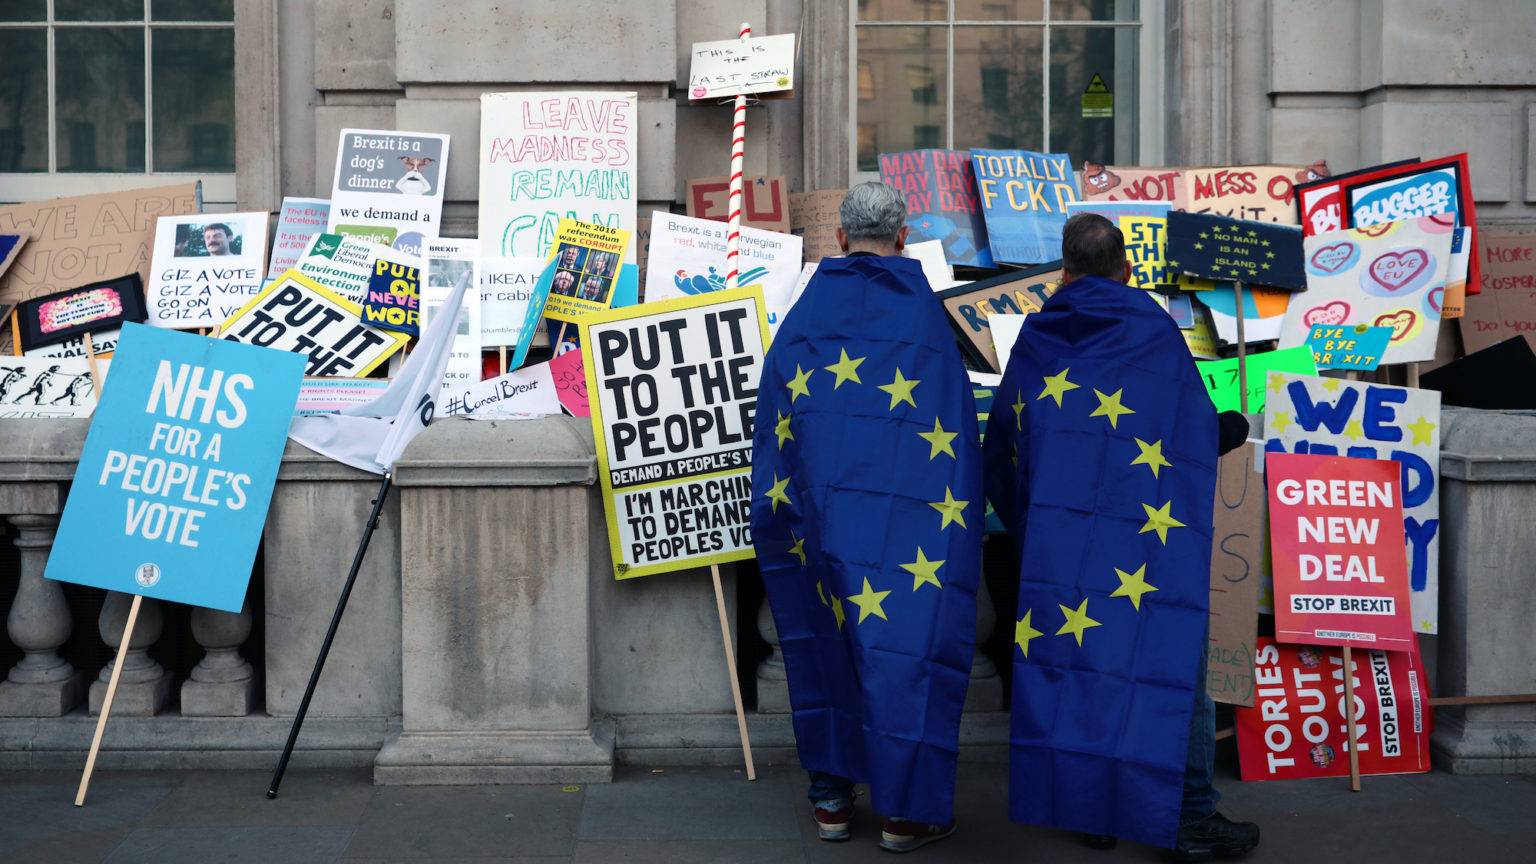 We must never forget the Remainer elite's atrocious assault on democracy